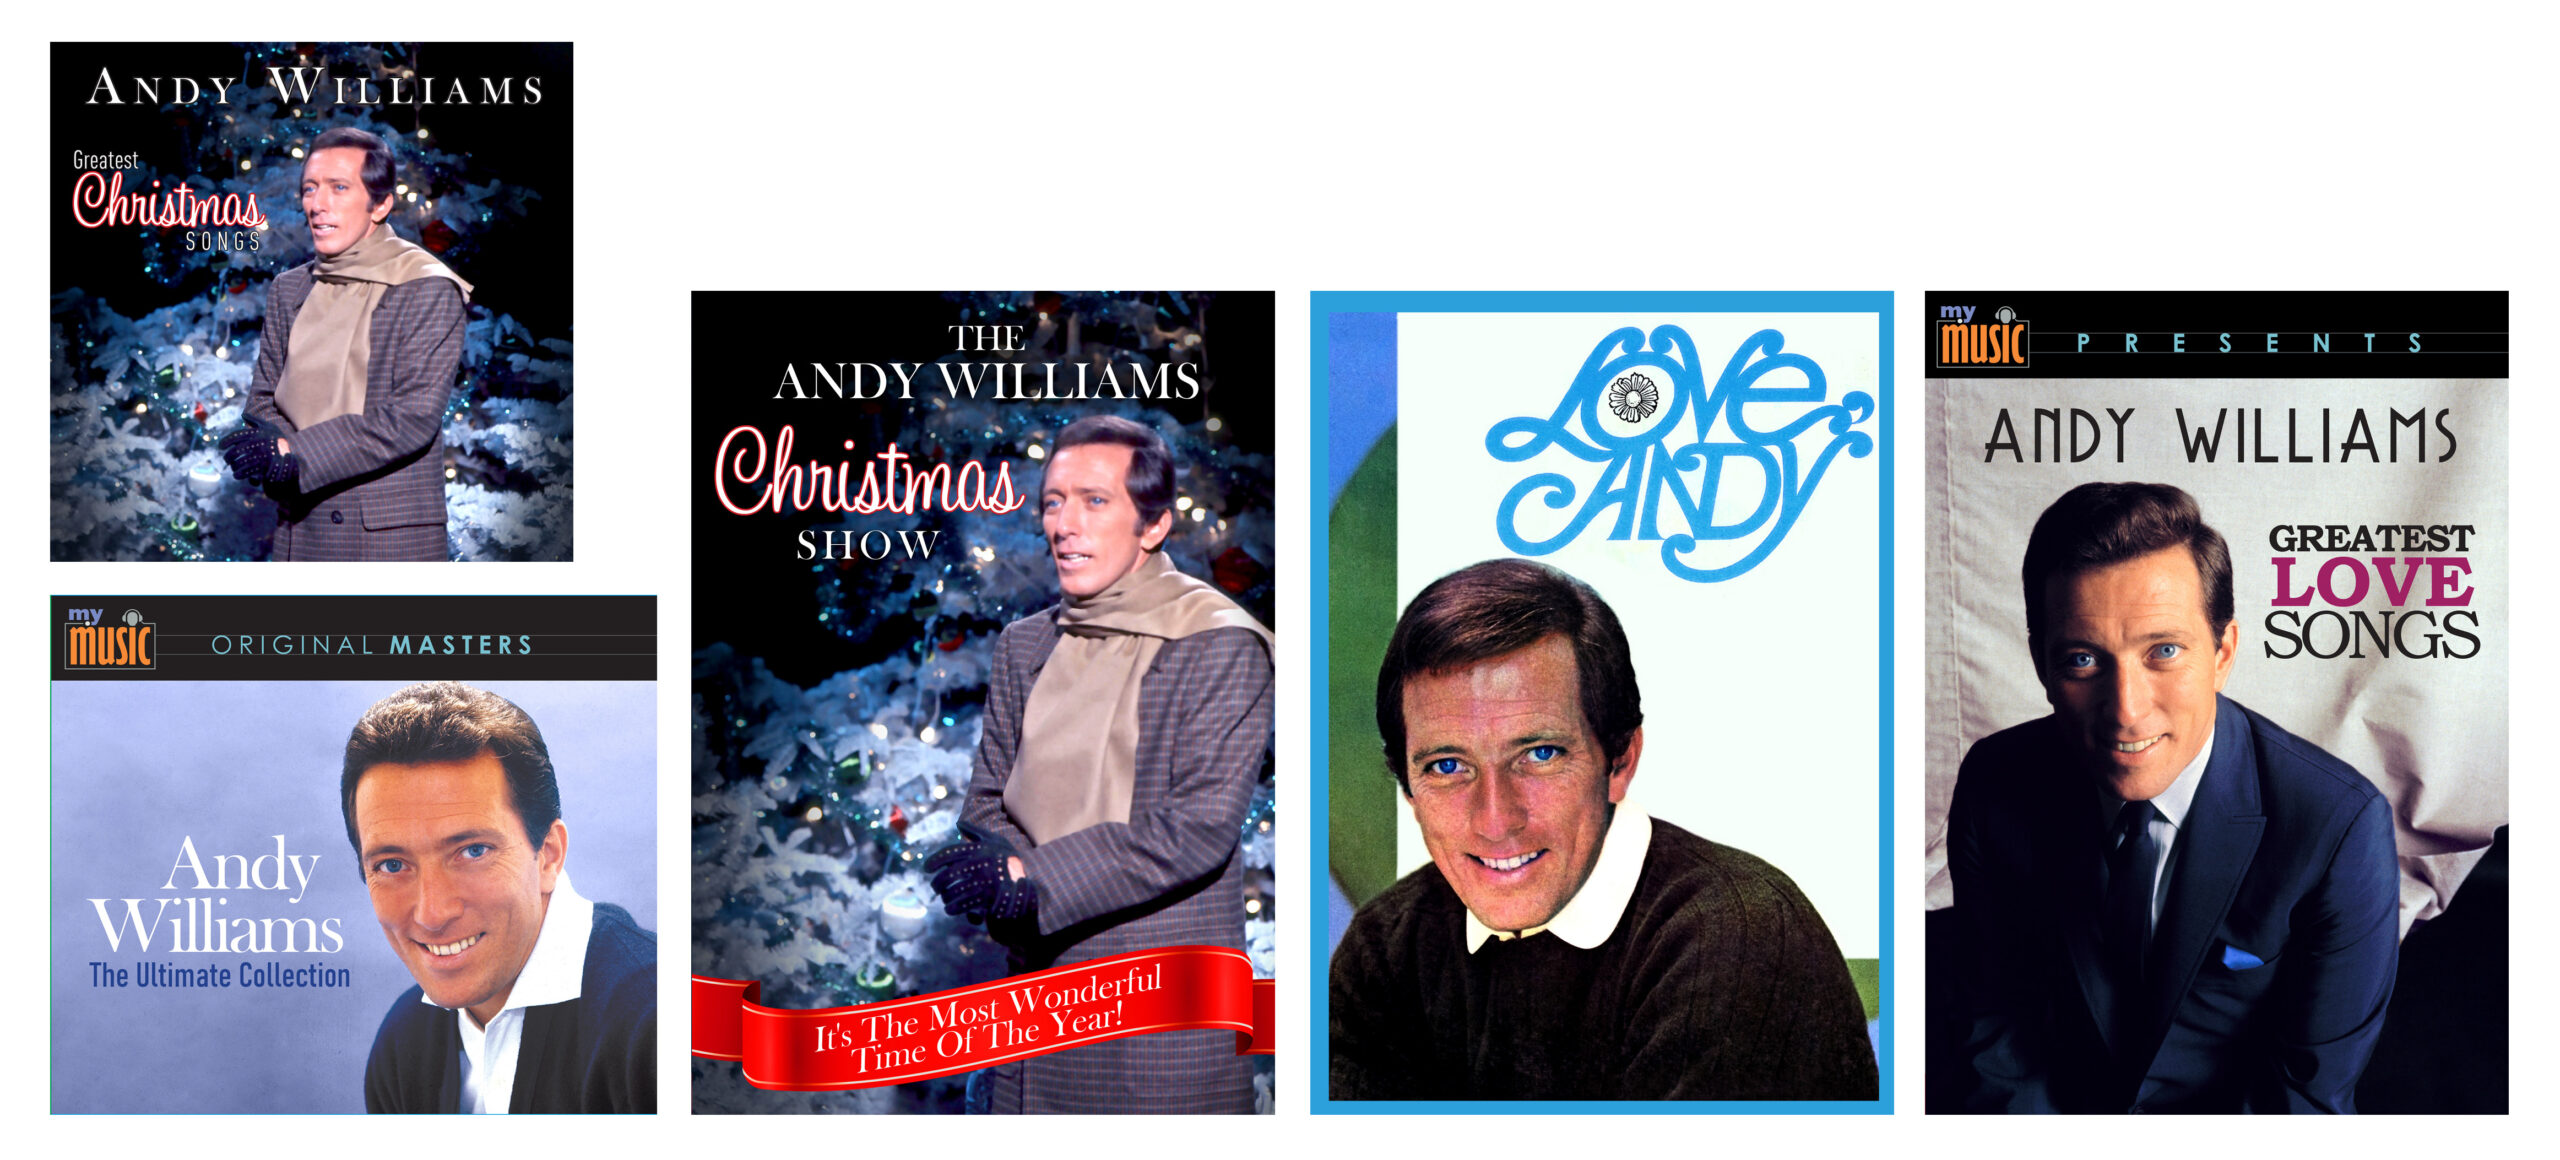 Andy Williams Combo:  5 CD set and 3 DVD Set